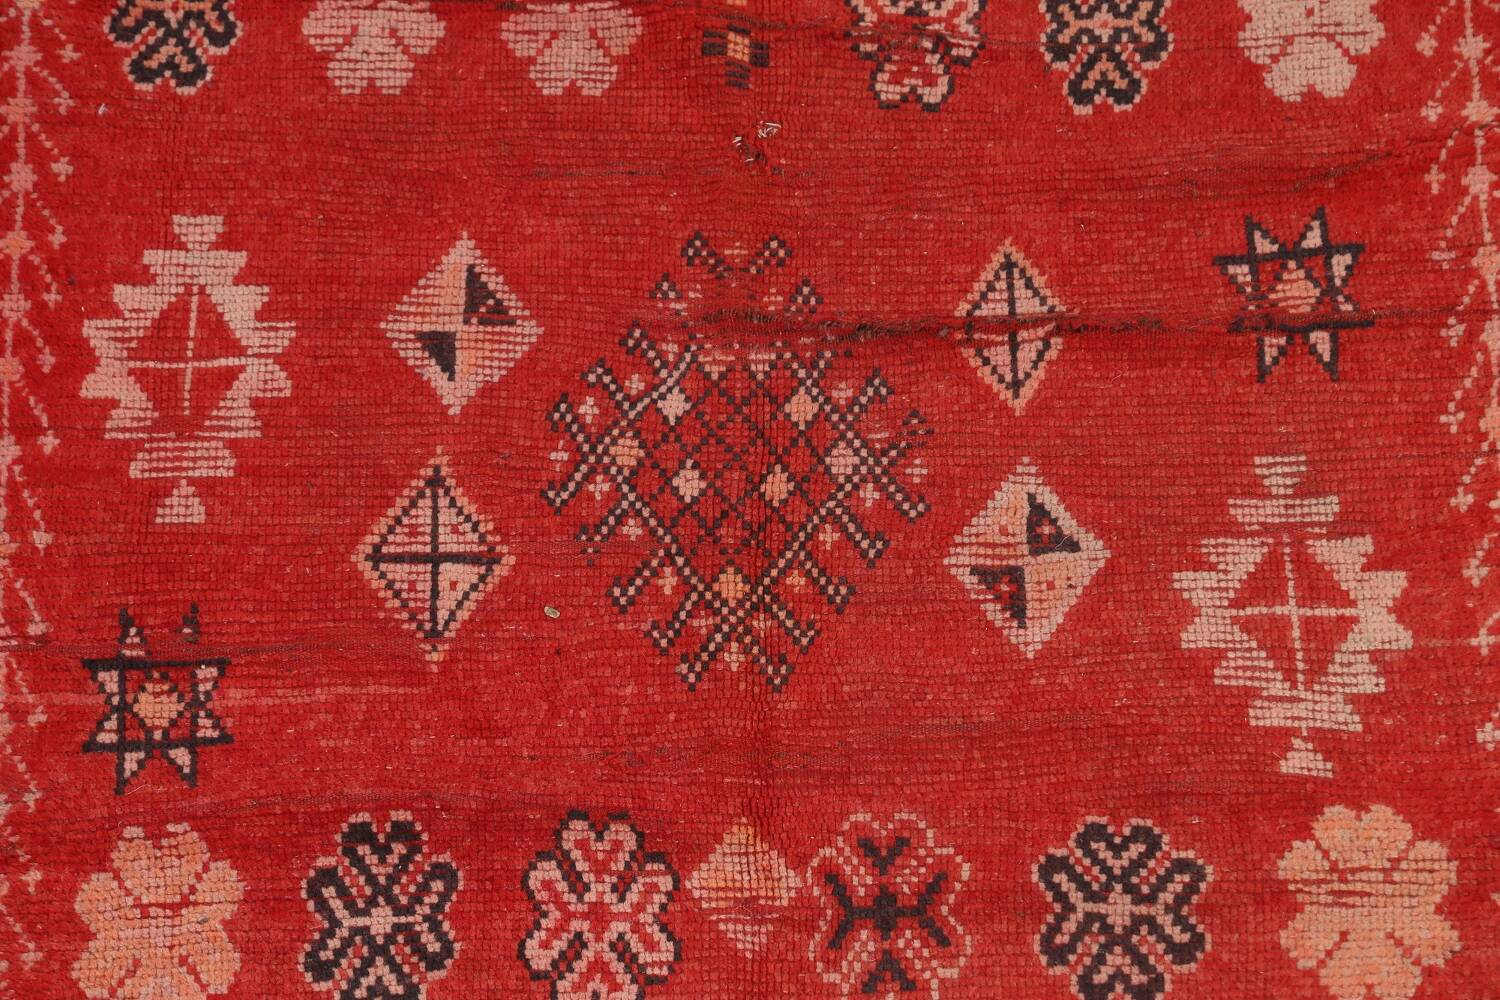 Antique Moroccan Wool Rug 5x10 image 4